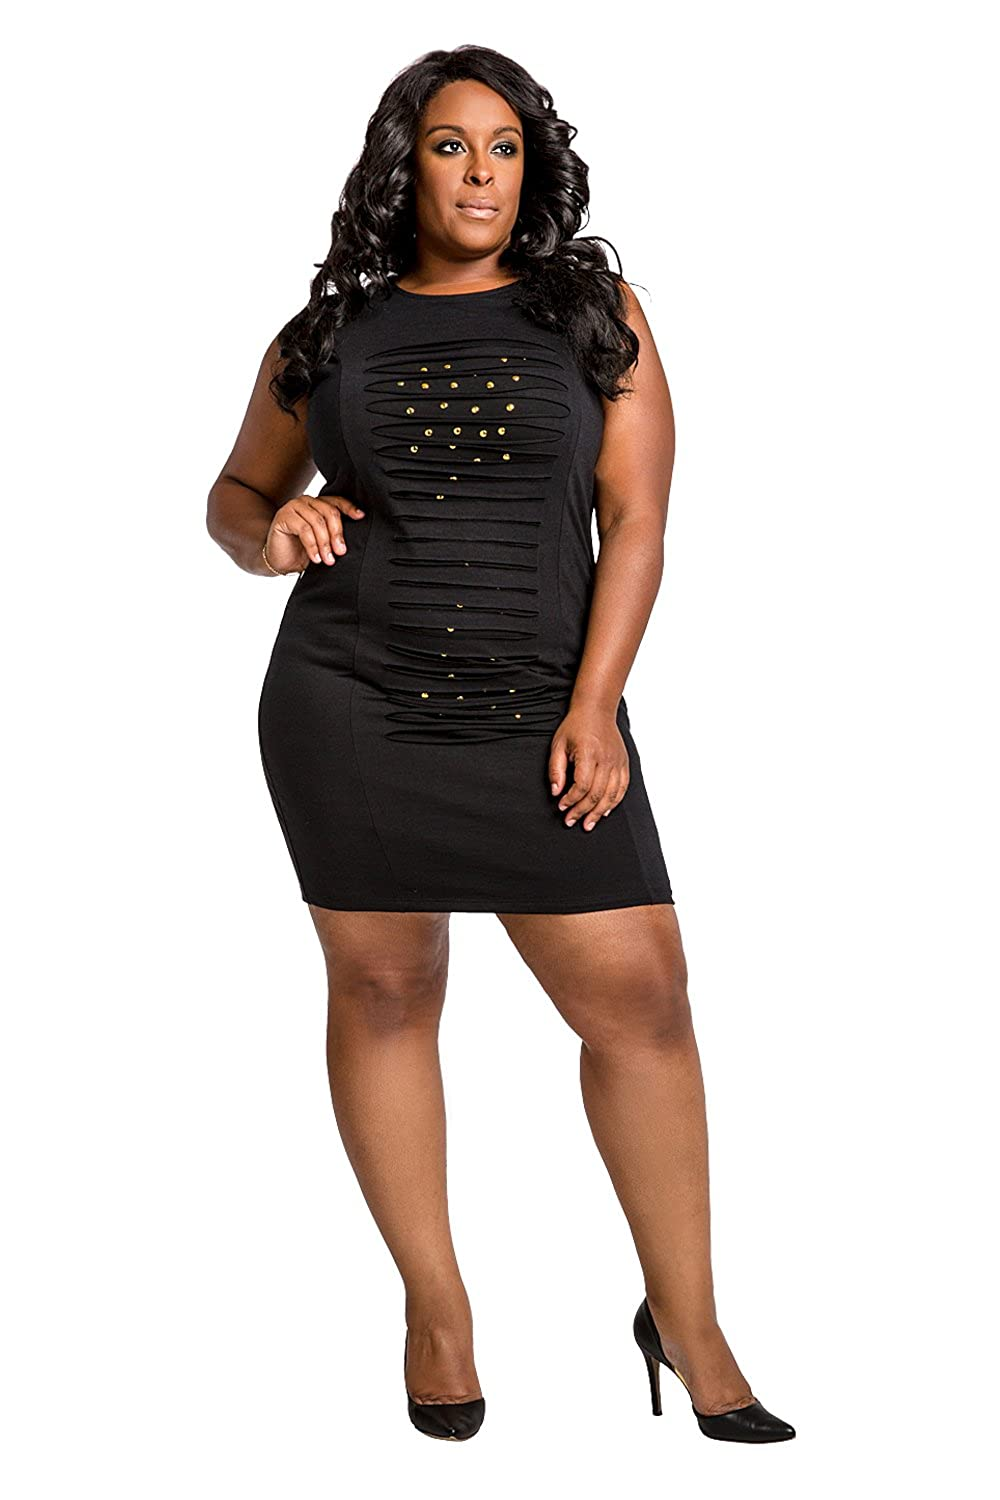 62ce9e322 Poetic Justice Plus Size Curvy Women's Black Ponte Front Studs Hourglass  Dress at Amazon Women's Clothing store: